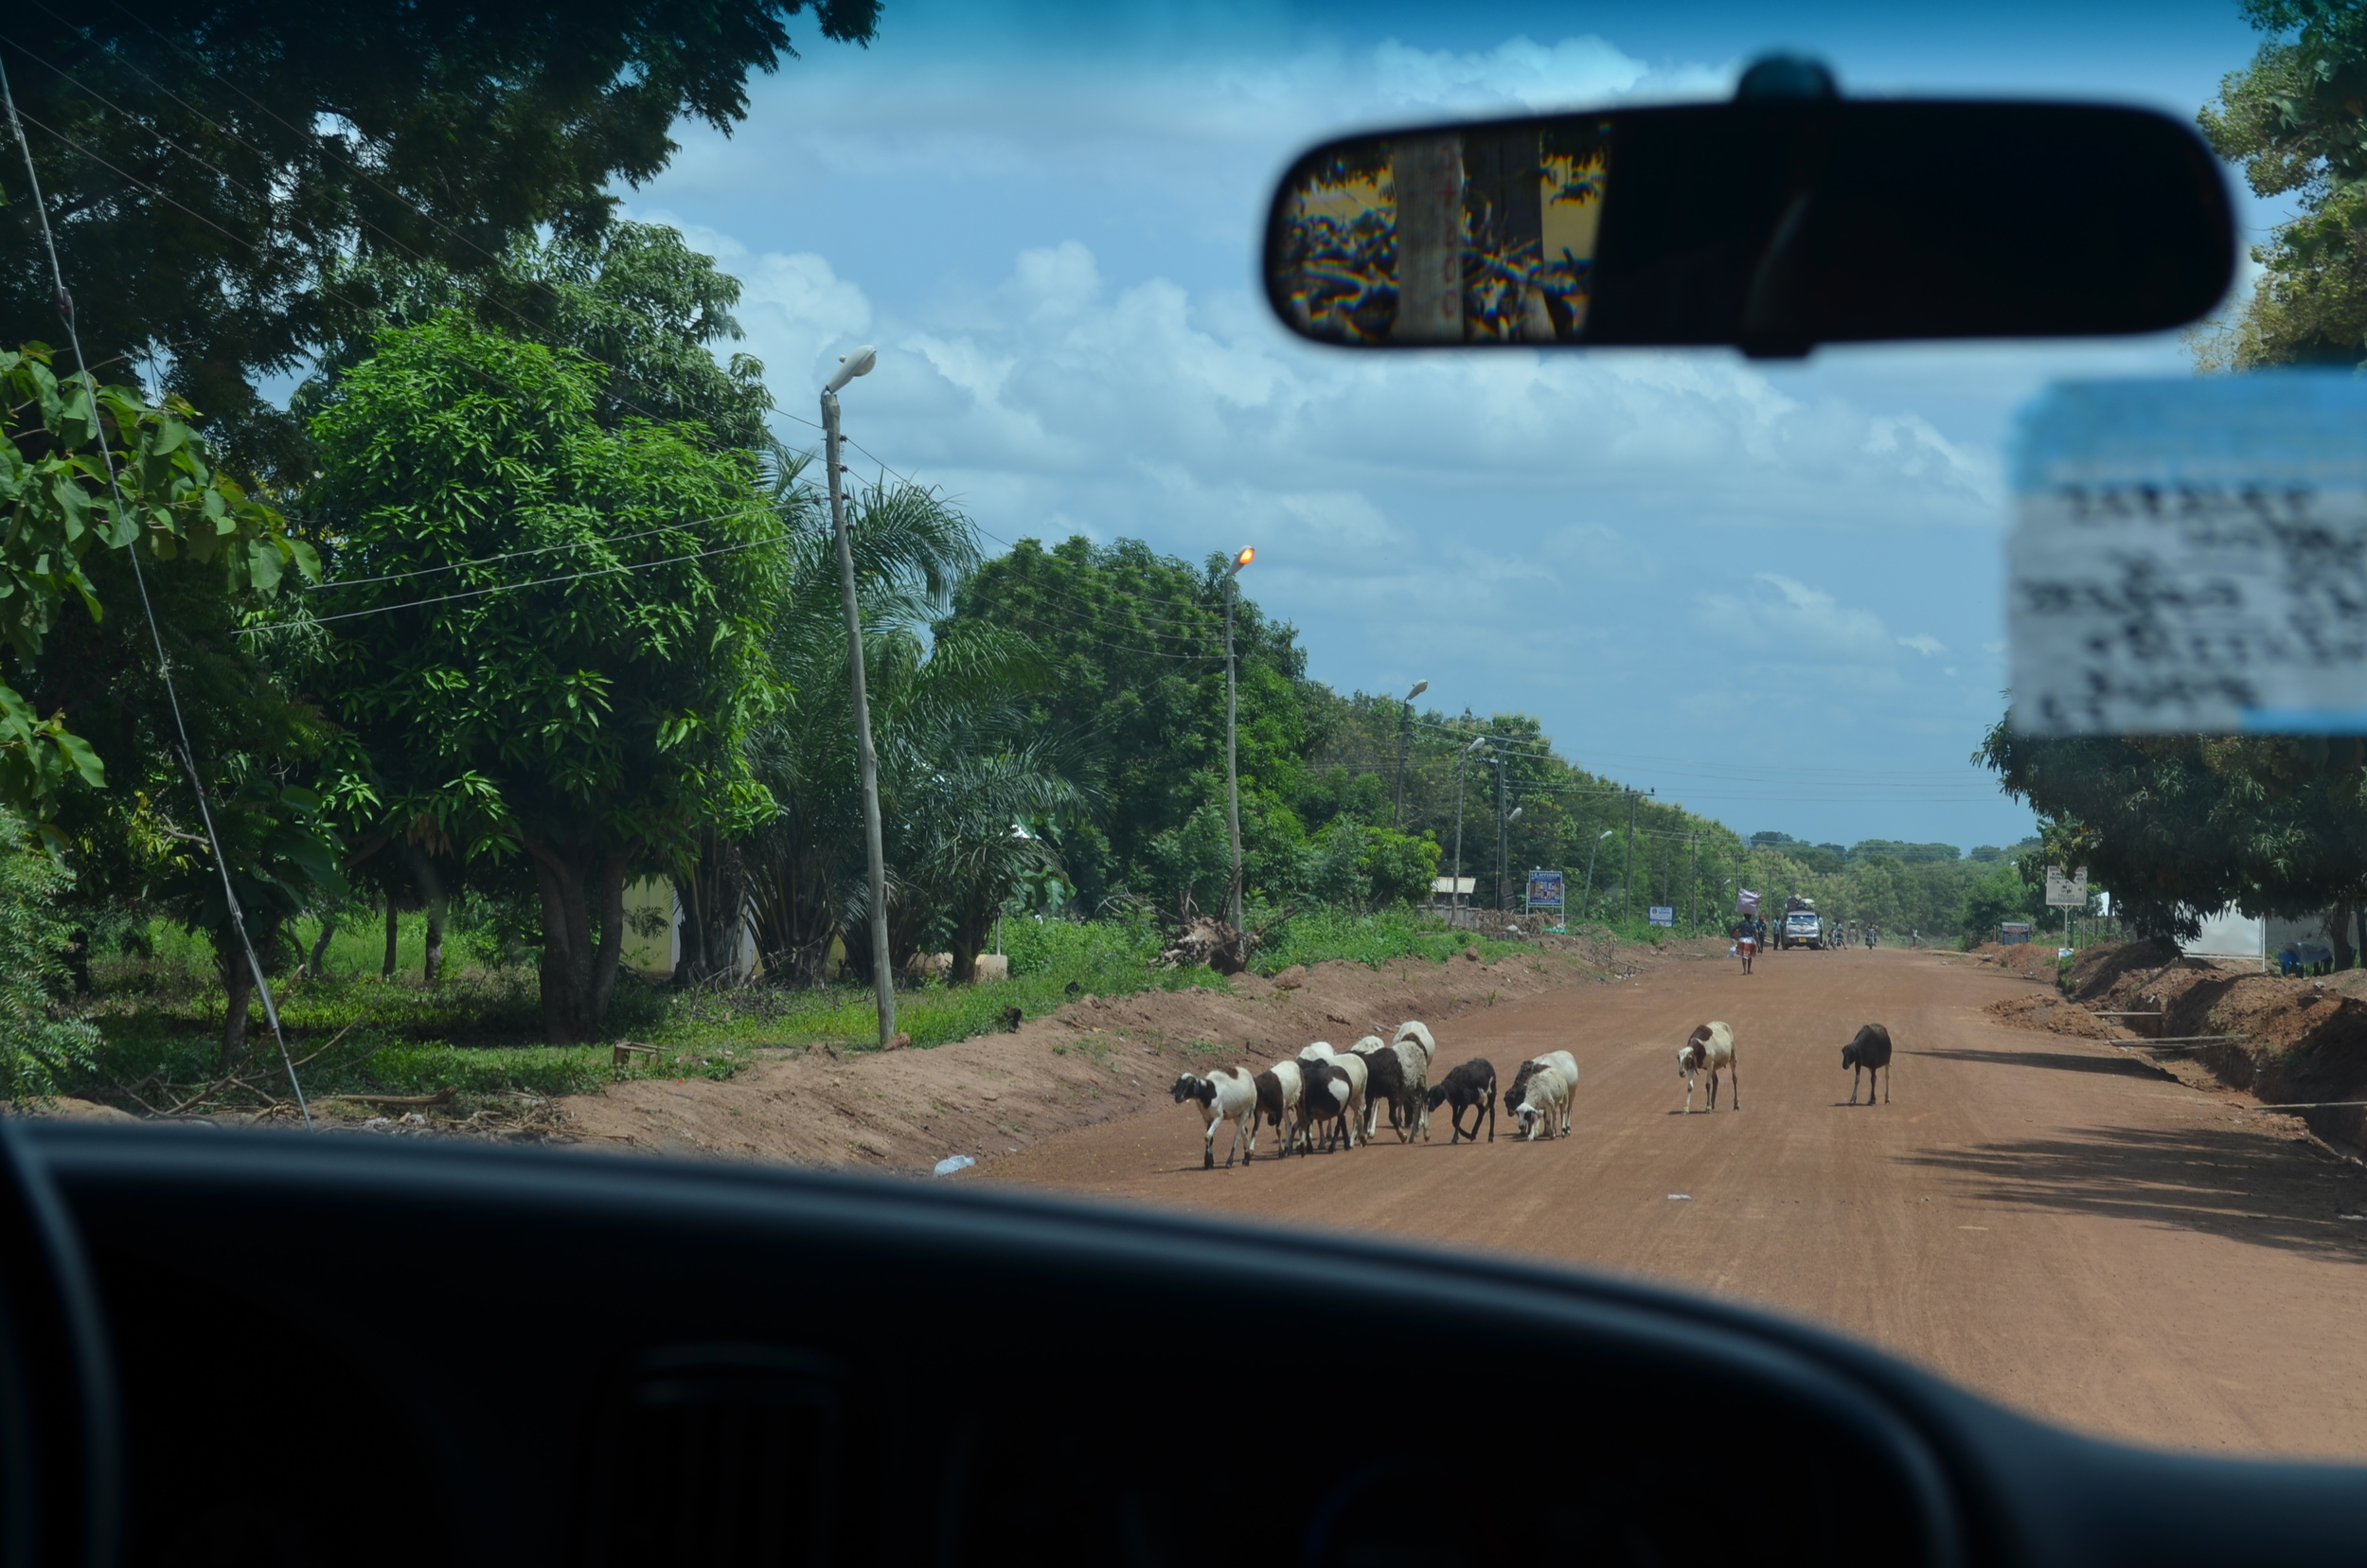 One of the main roads on the way to Atebubu, where Brother Paul Owusu is pastor.